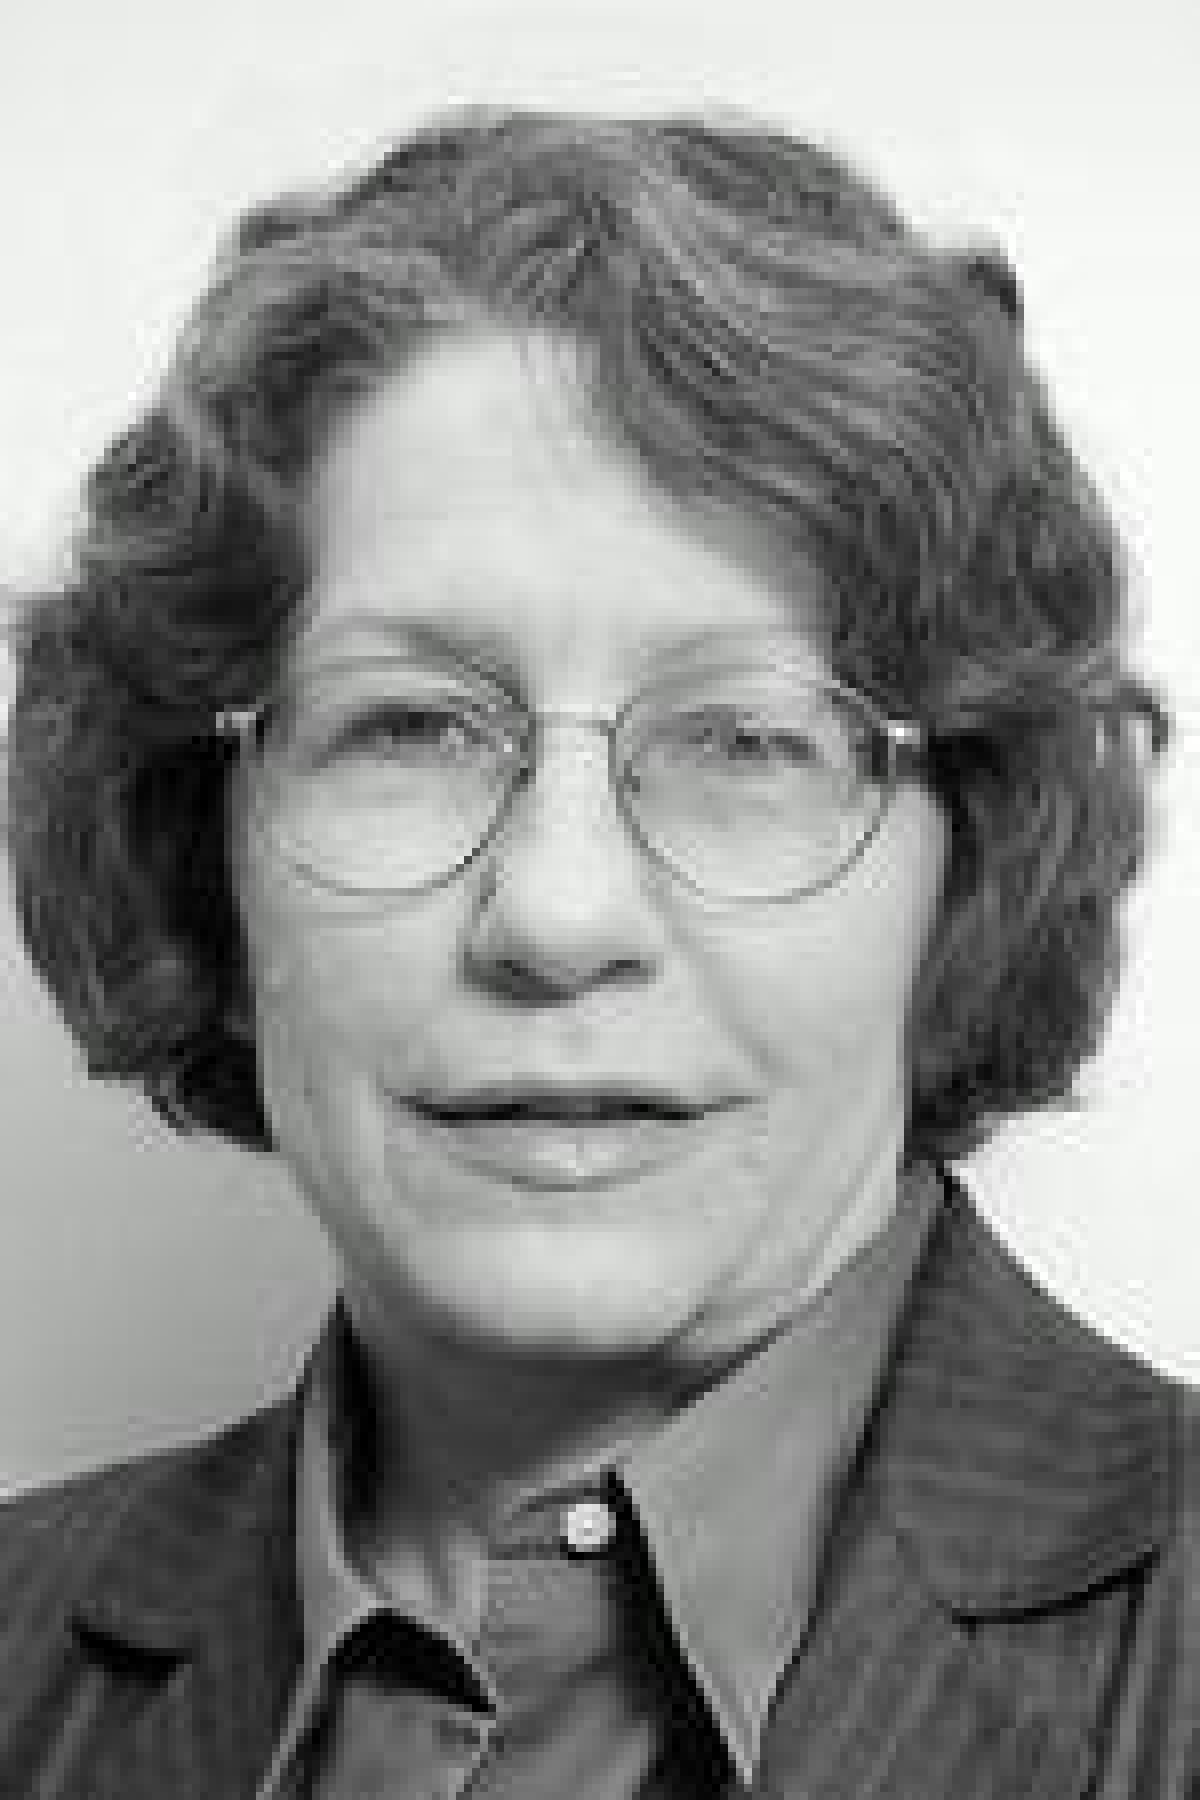 Private: Janis L. Anderson, PhD